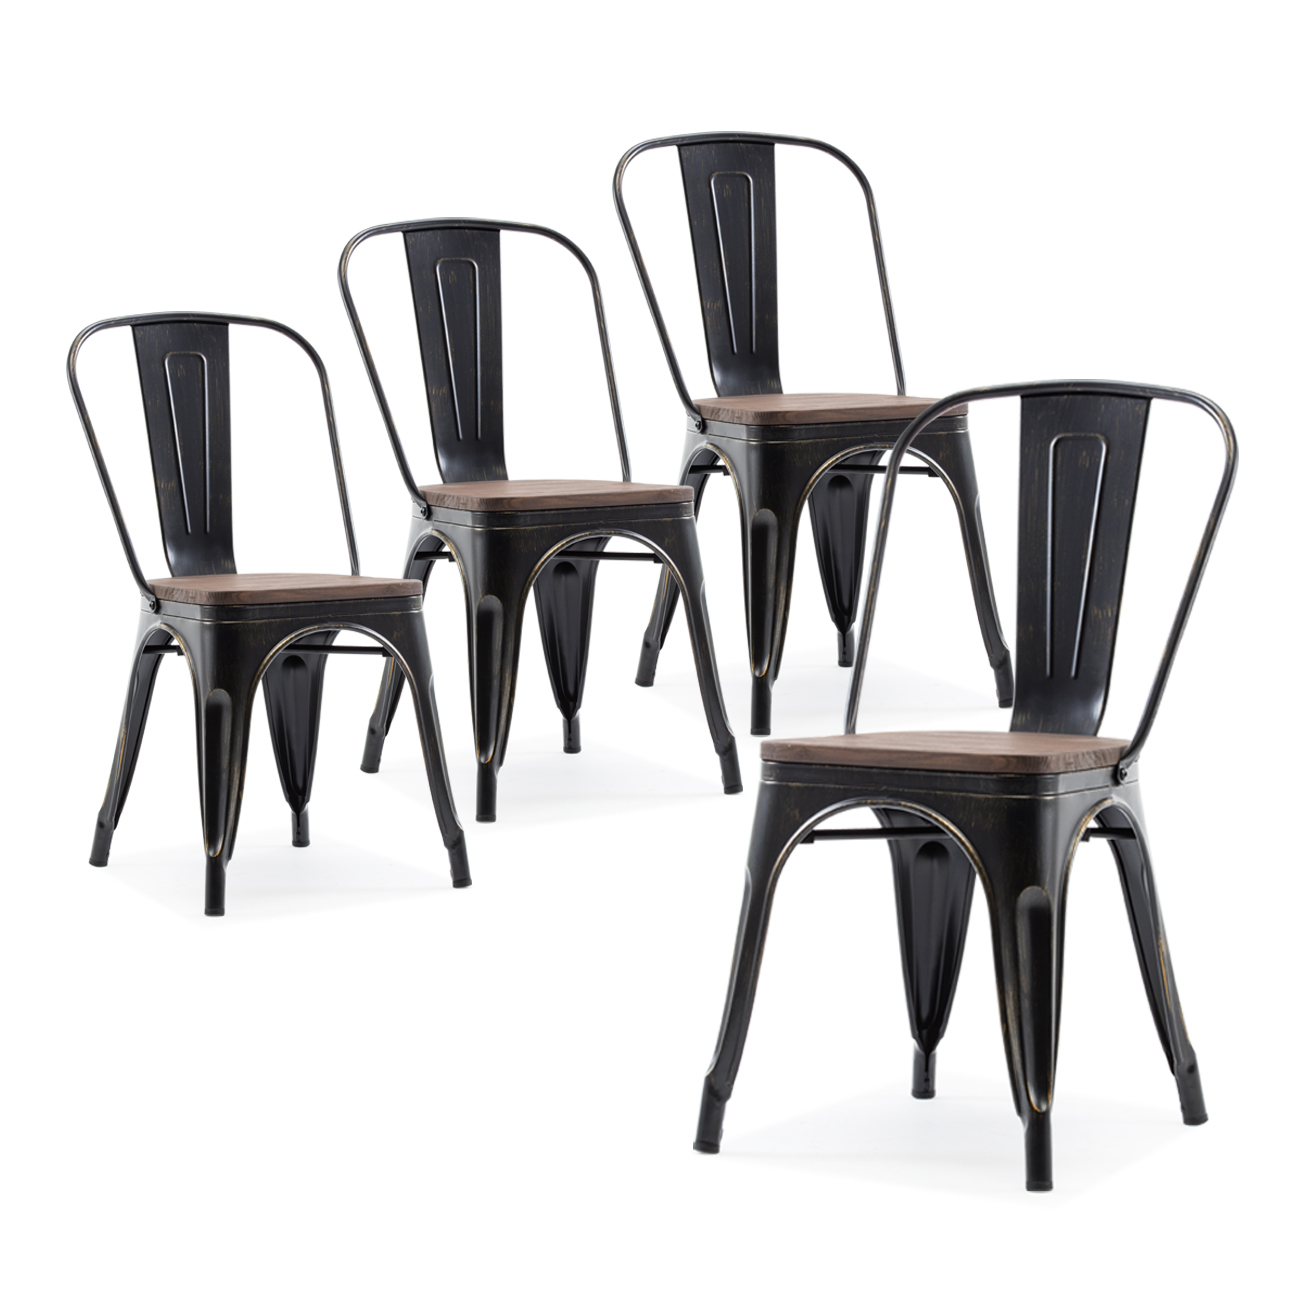 Details About Modern Style Metal Industrial Stackable Bistro Dining Chairs Set Of 4